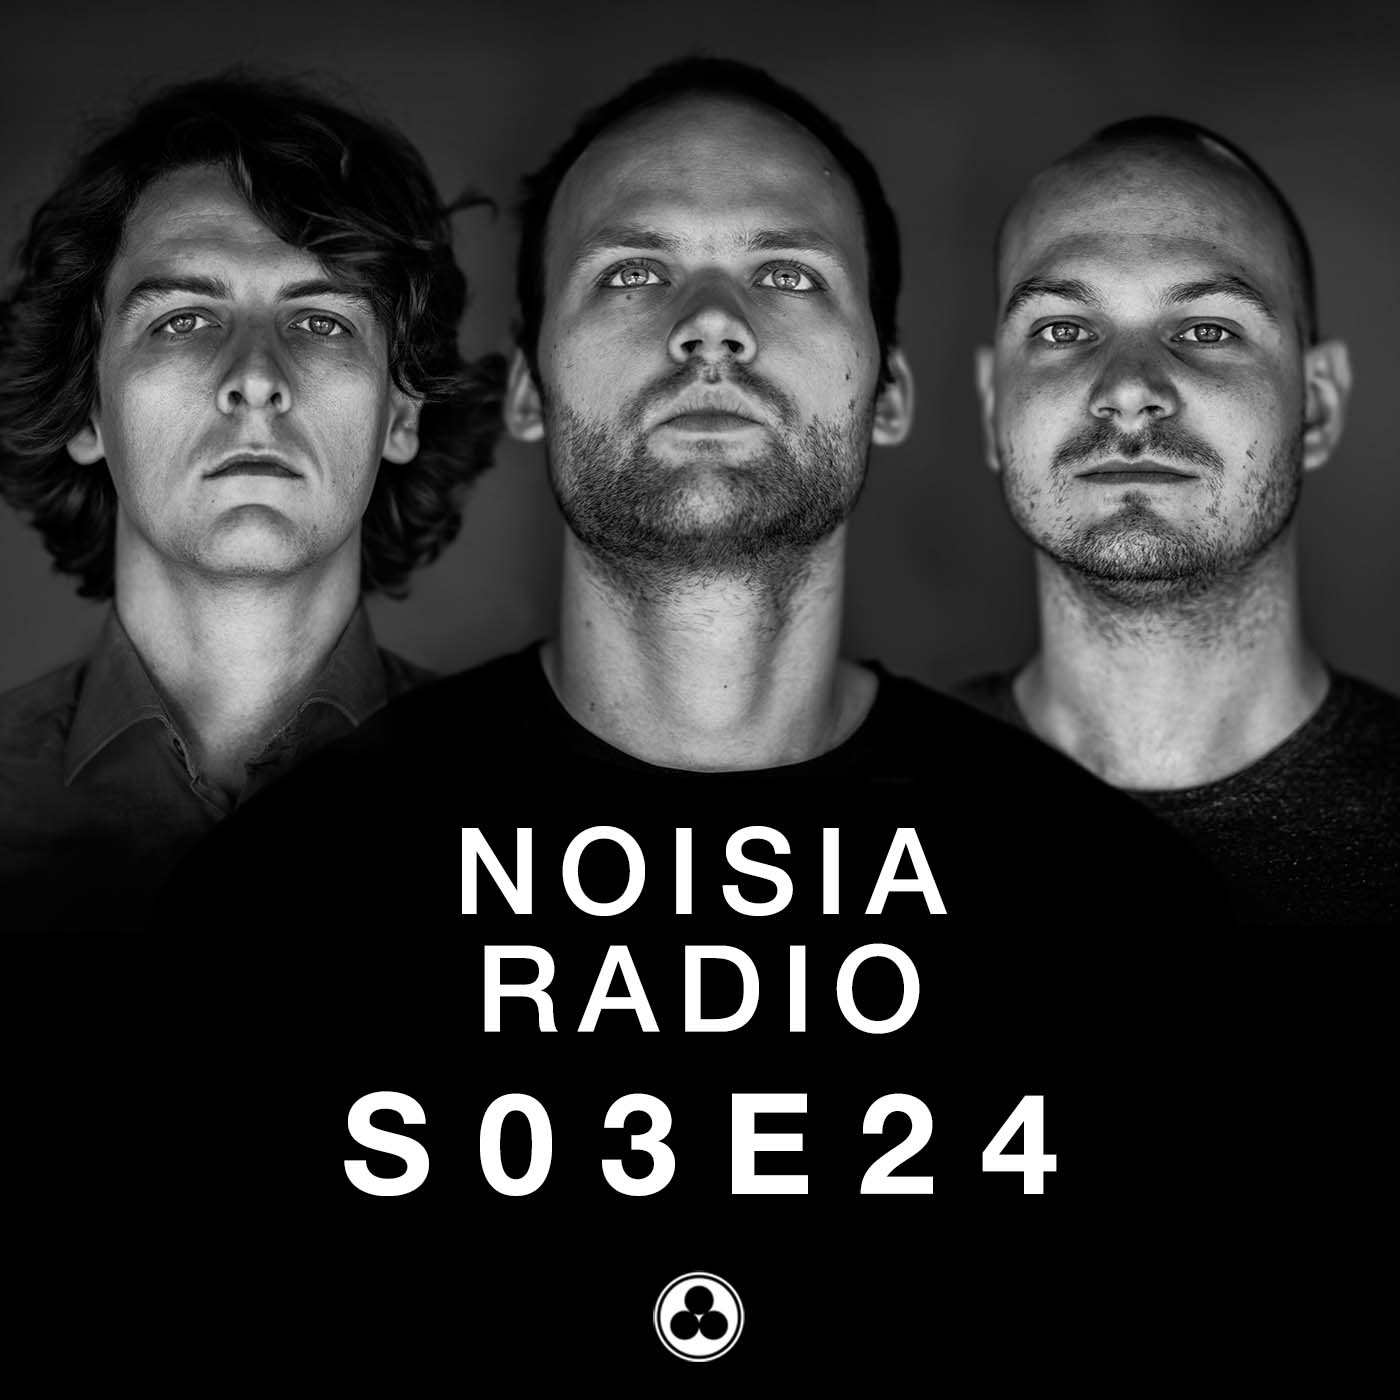 Noisia Radio S03E24